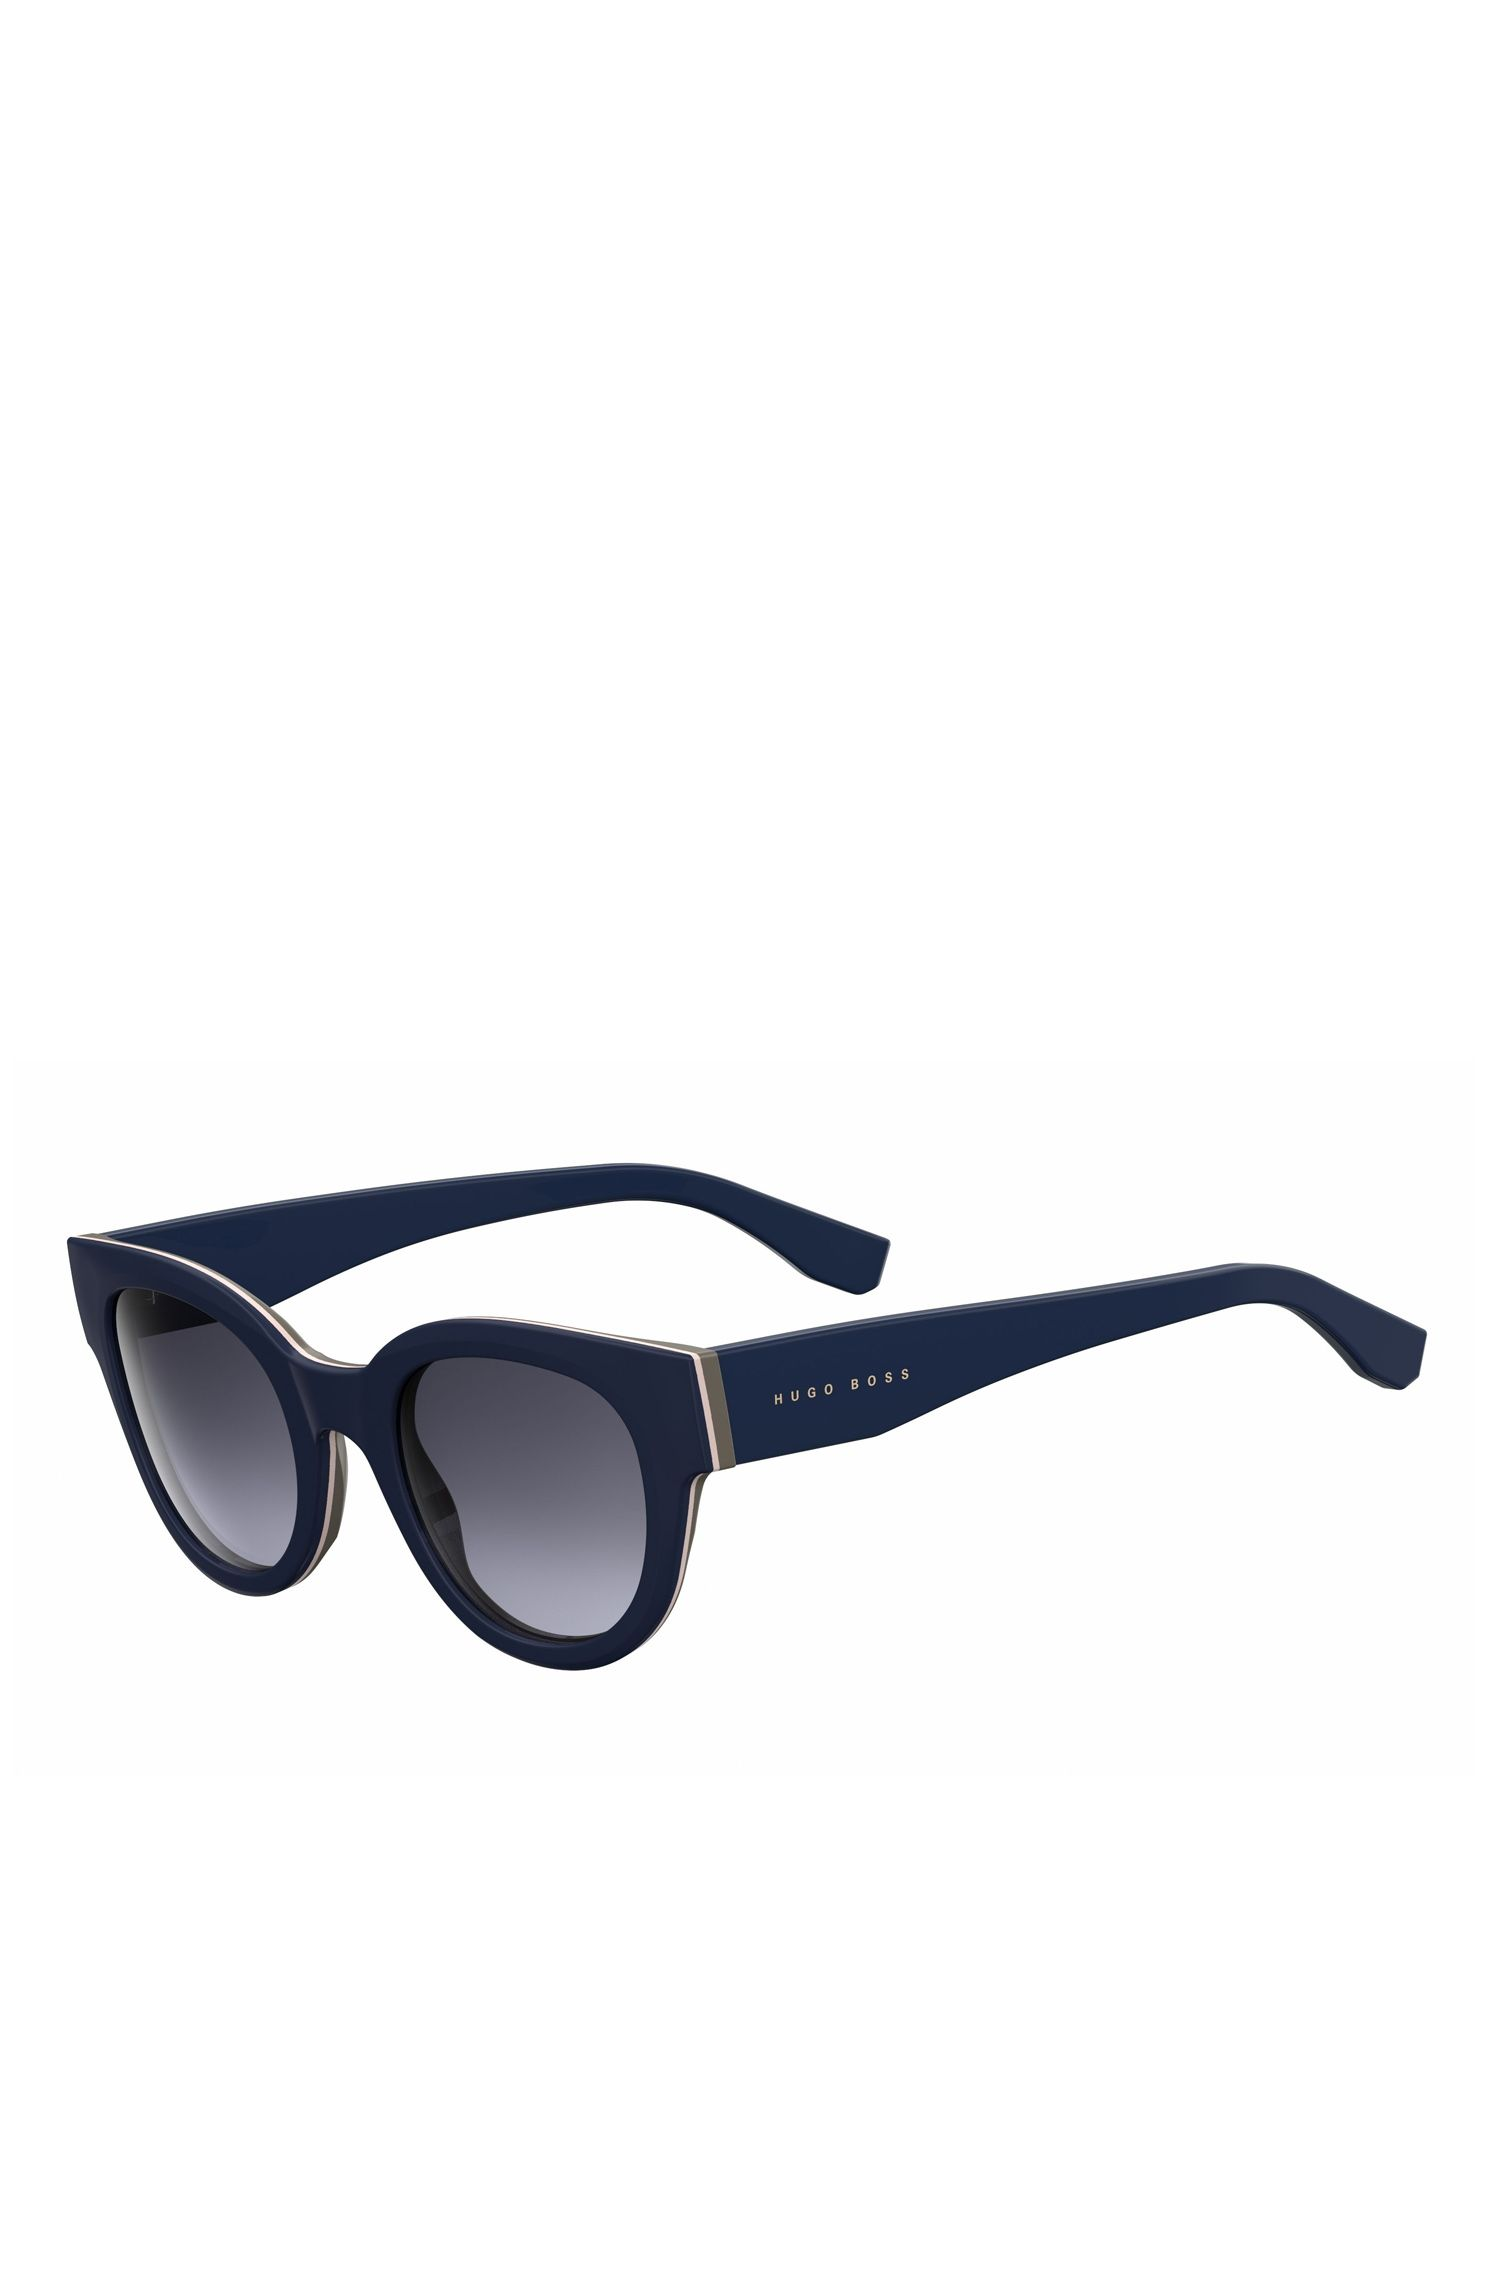 Navy Acetate Round Sunglasses | BOSS 0888S, Assorted-Pre-Pack